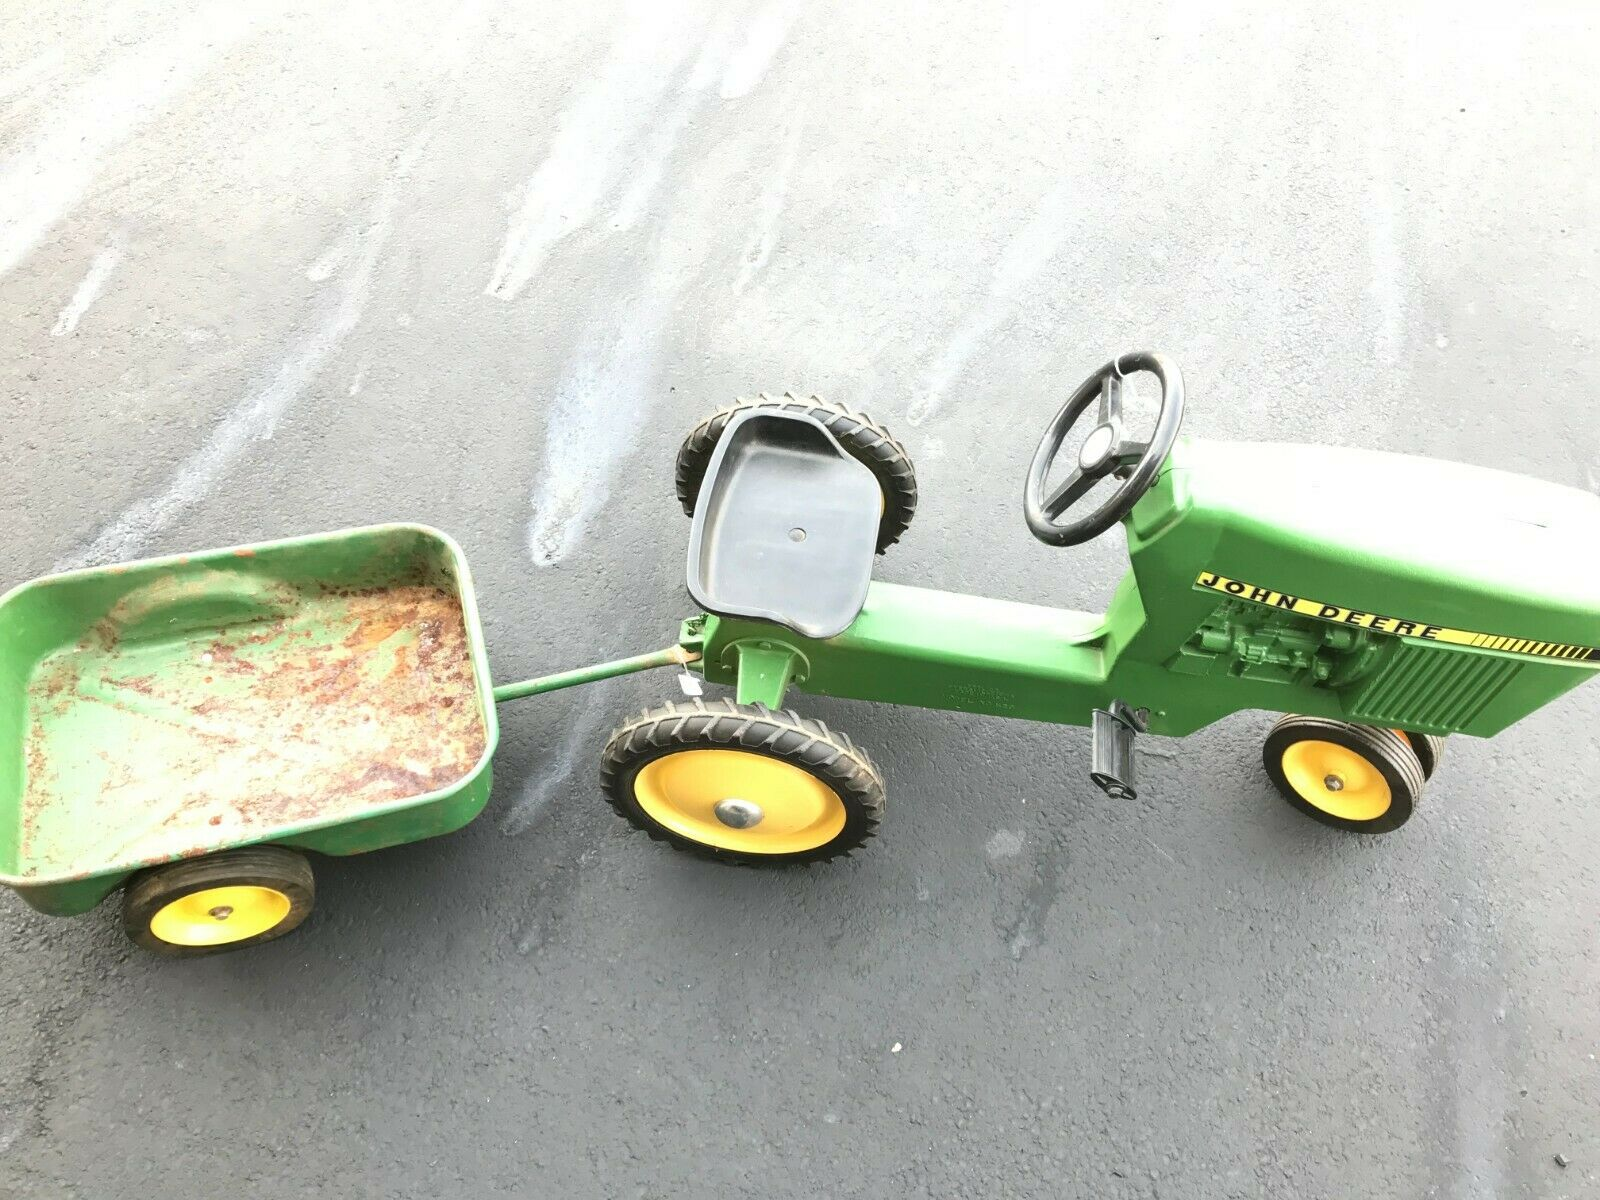 USA Ertl Model John Deere Toy Pedal Tractor with Trailer Kid Toy Tractor